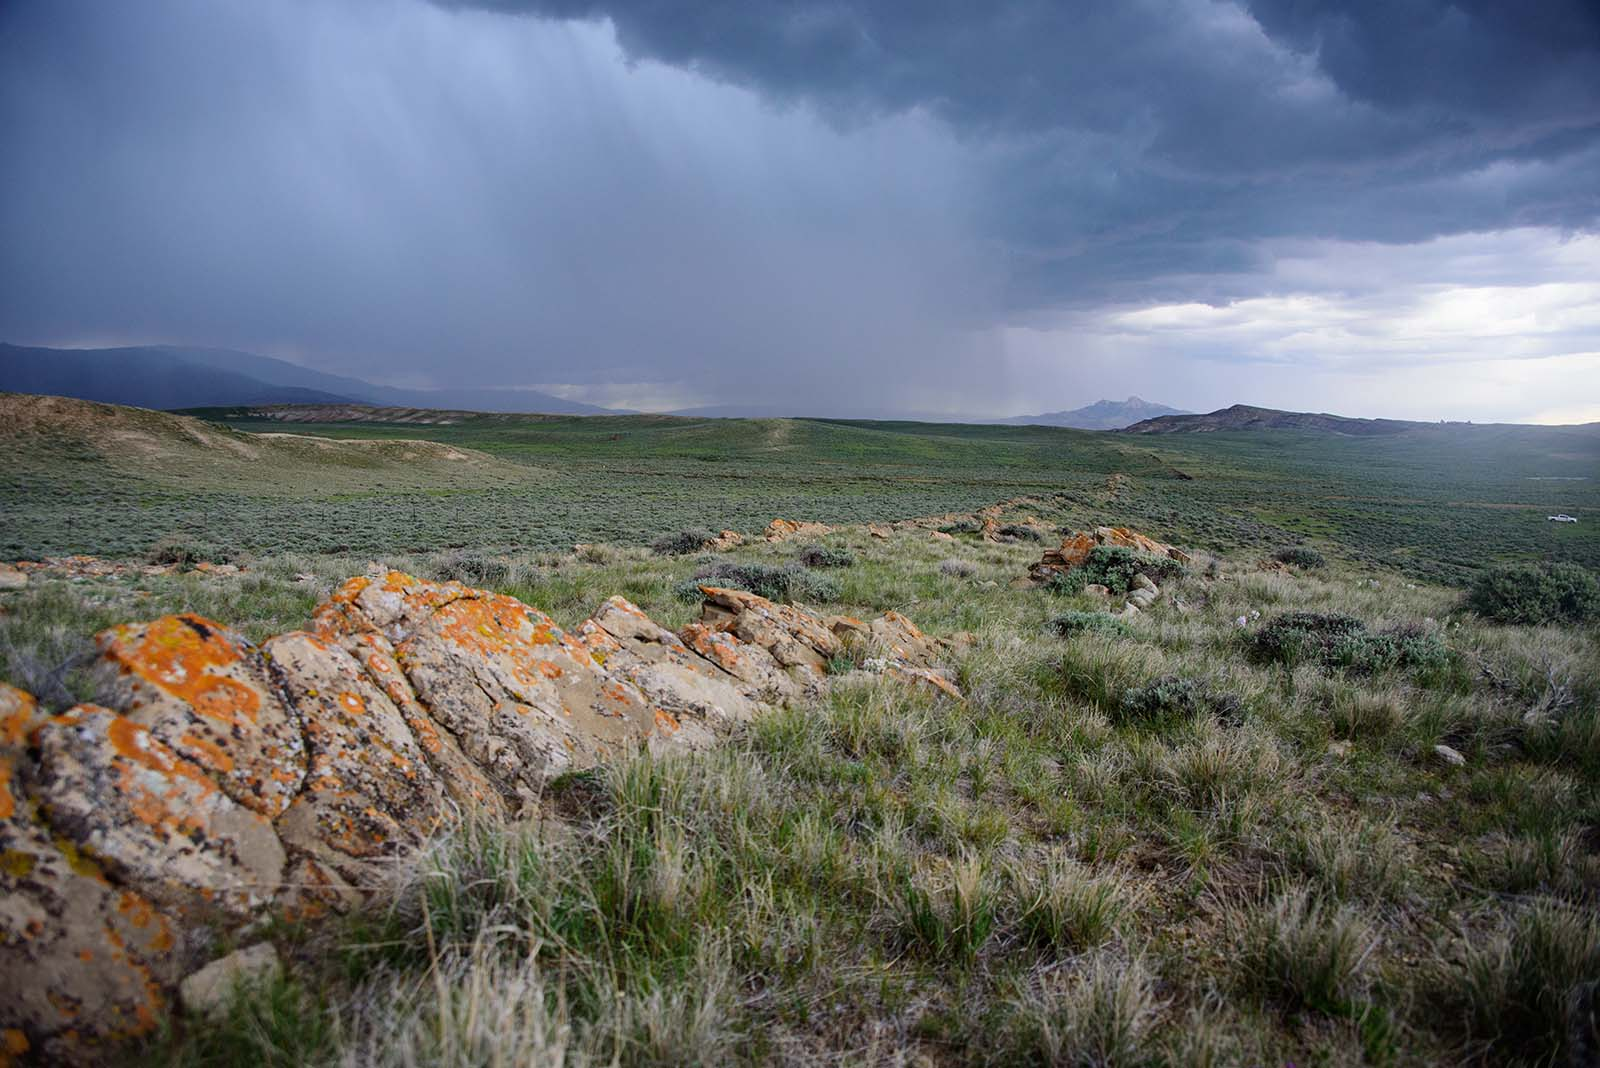 Rain clouds with Heart Mountain in distance. Moosejaw Bravo Photography.